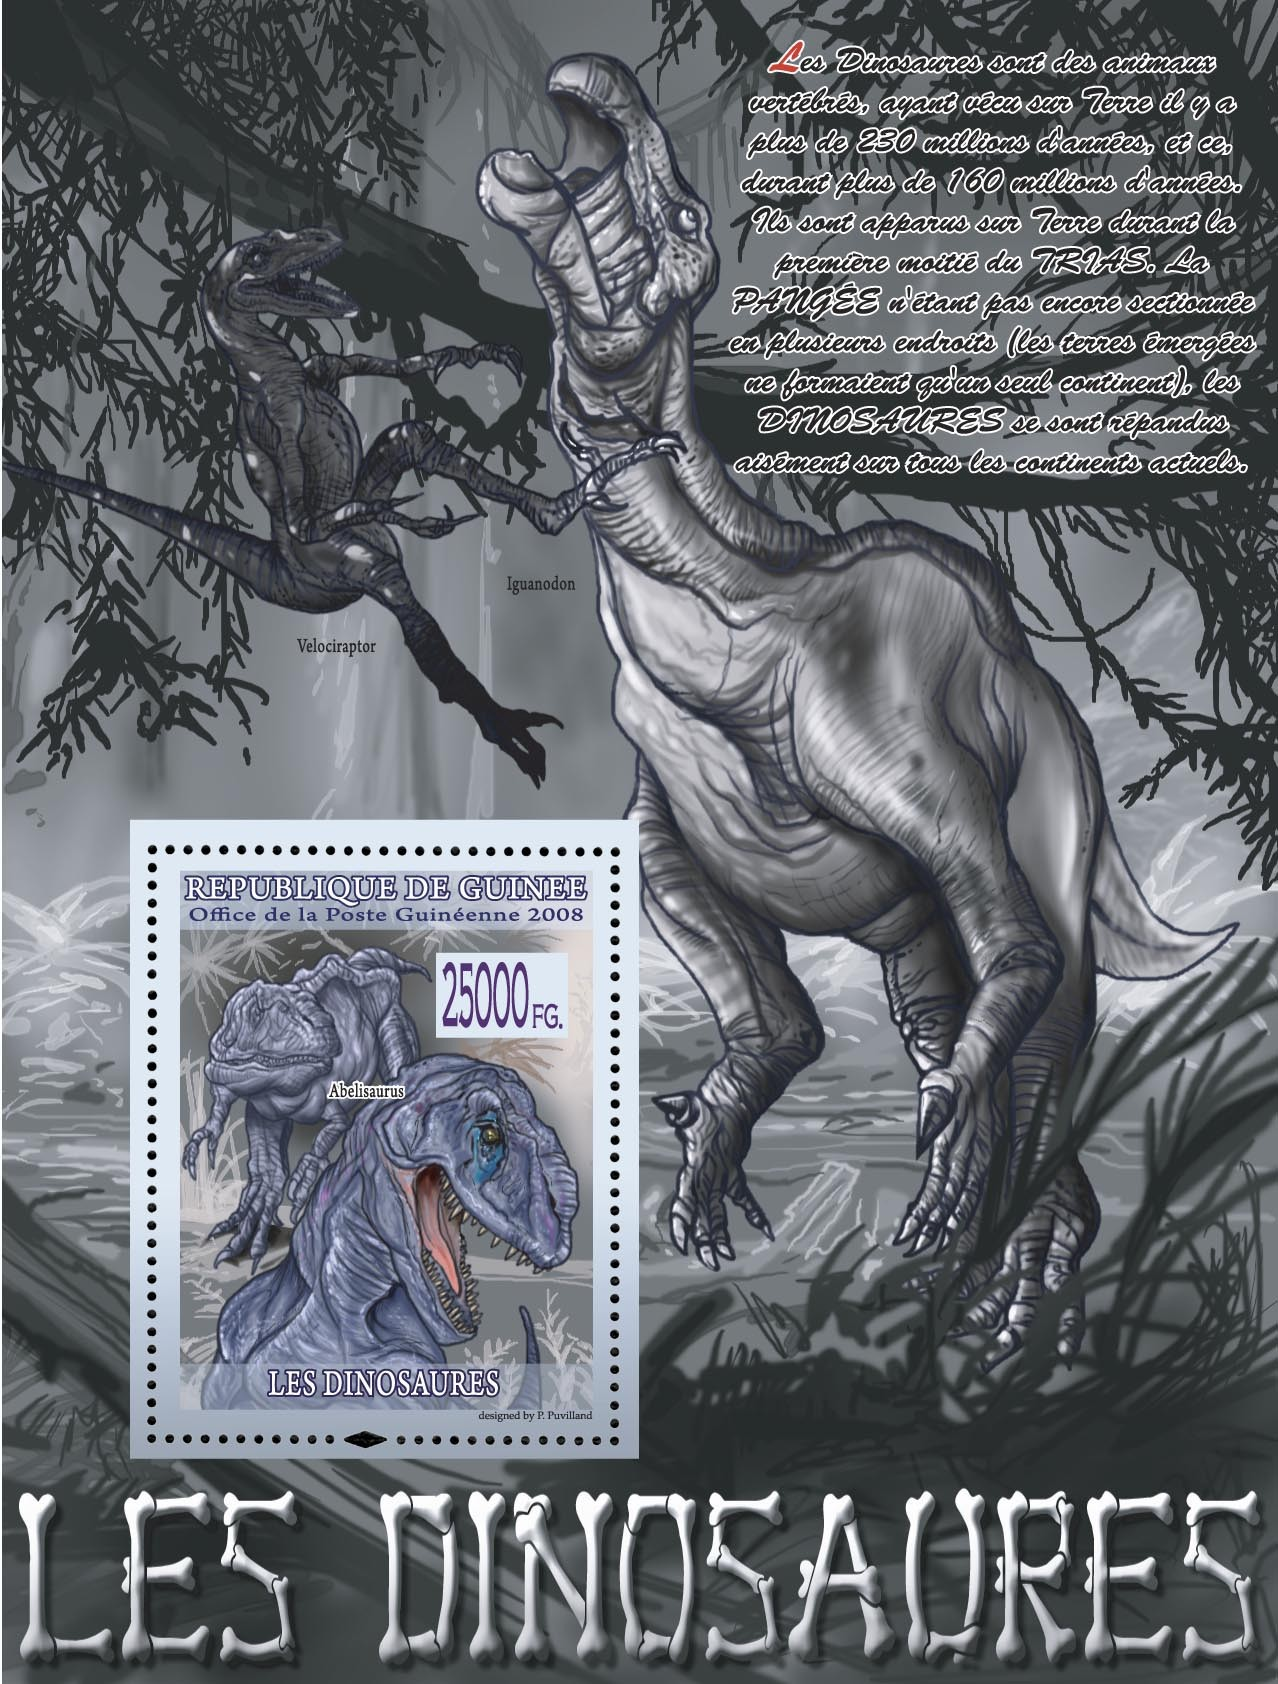 Abelisaurus ( Iguanodon, Velociraptor ) - Issue of Guinée postage stamps